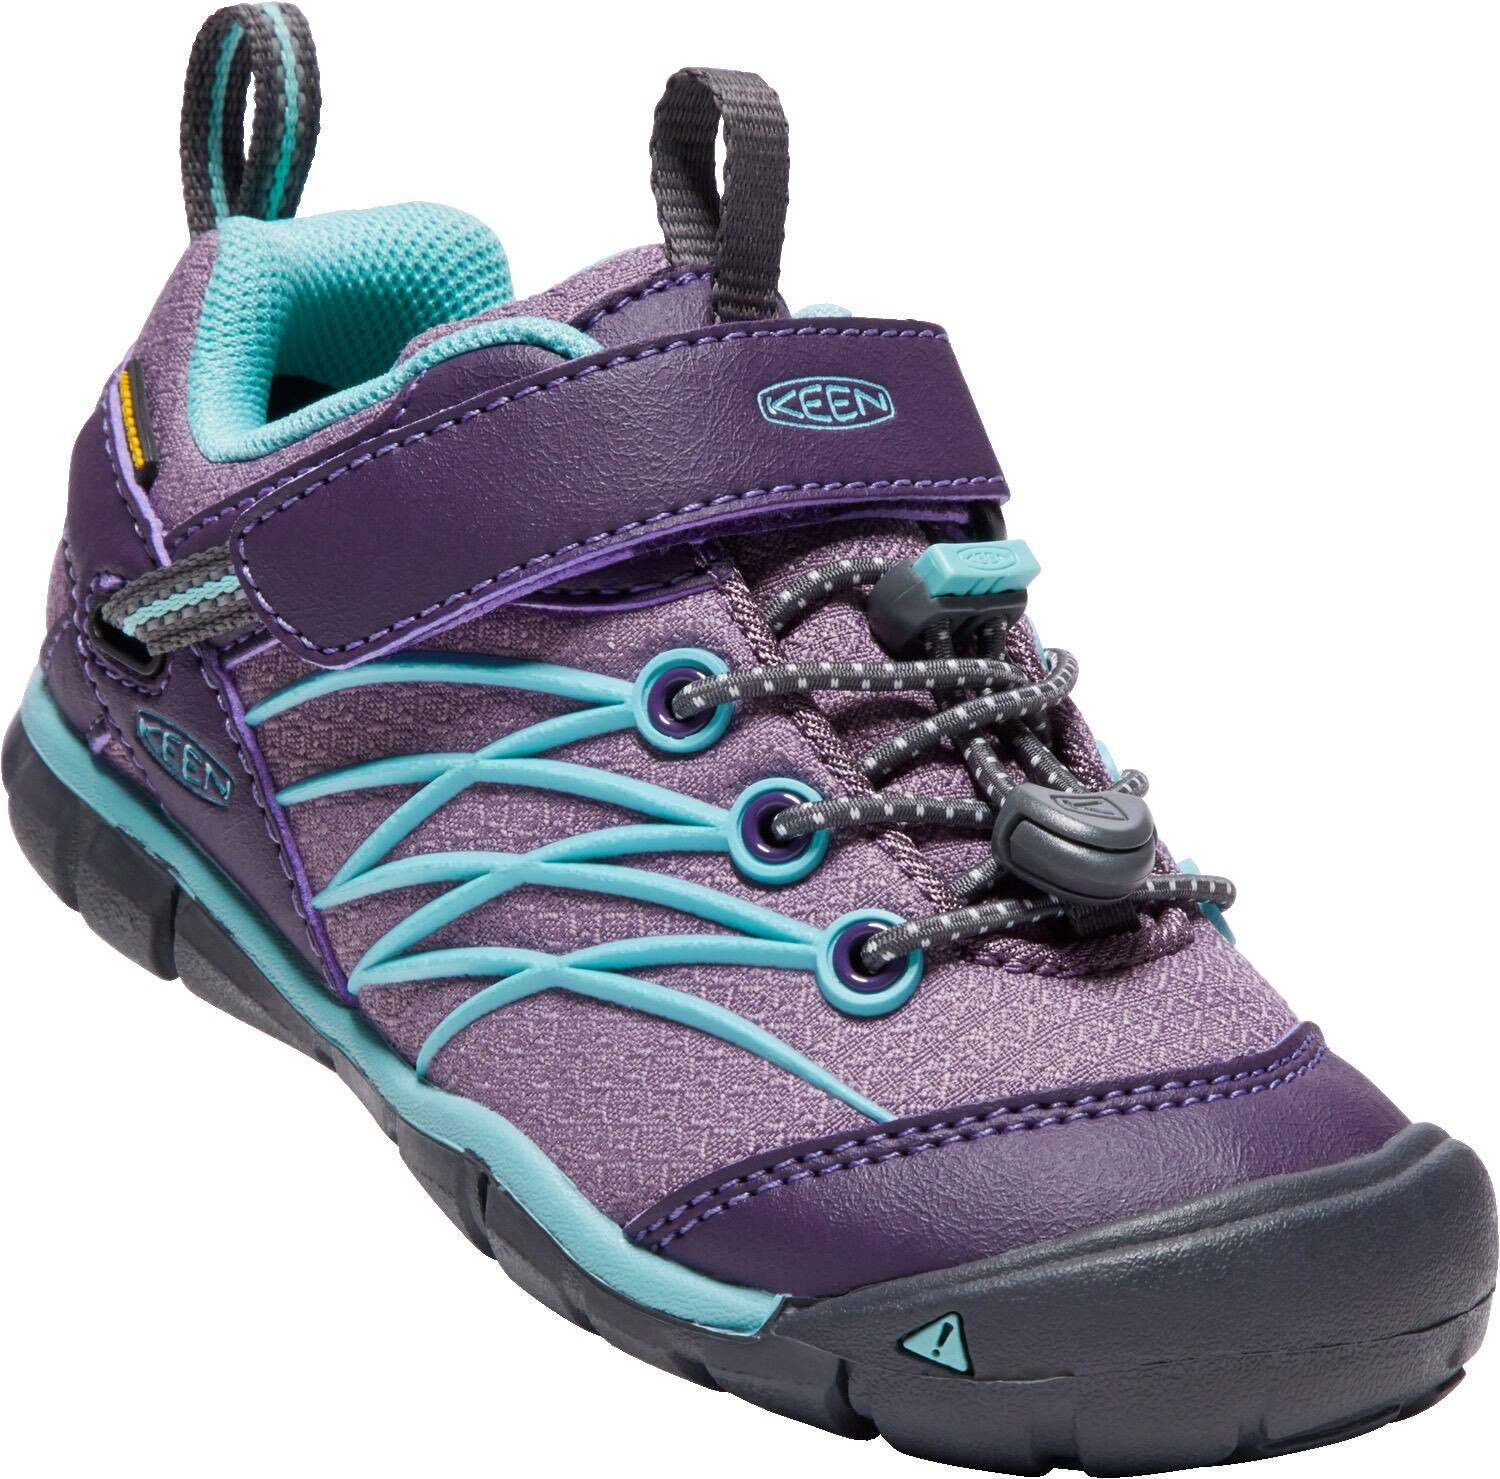 Keen Little Kids' Chandler CNX Sizes 8-13 (9 Montana Grape/Aqua Haze)